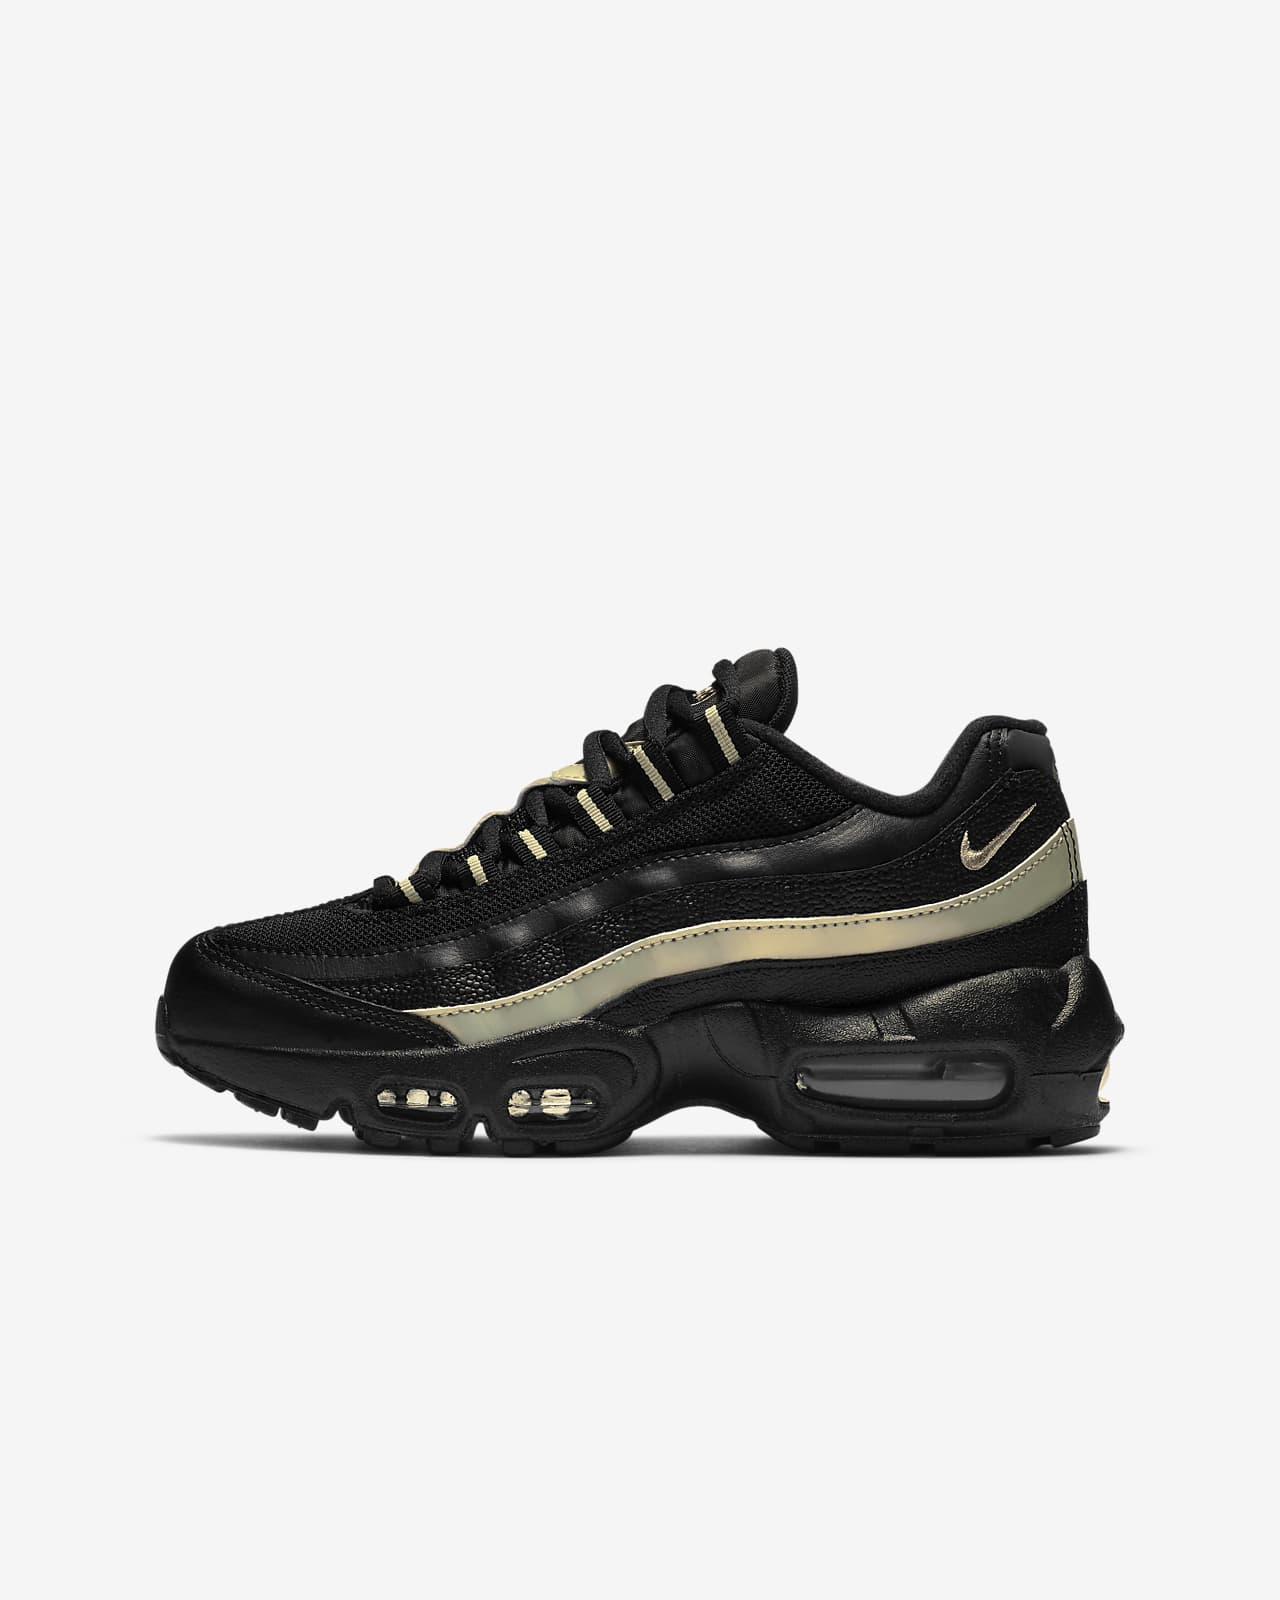 Nike Air Max 95 Recraft Zapatillas - Niño/a